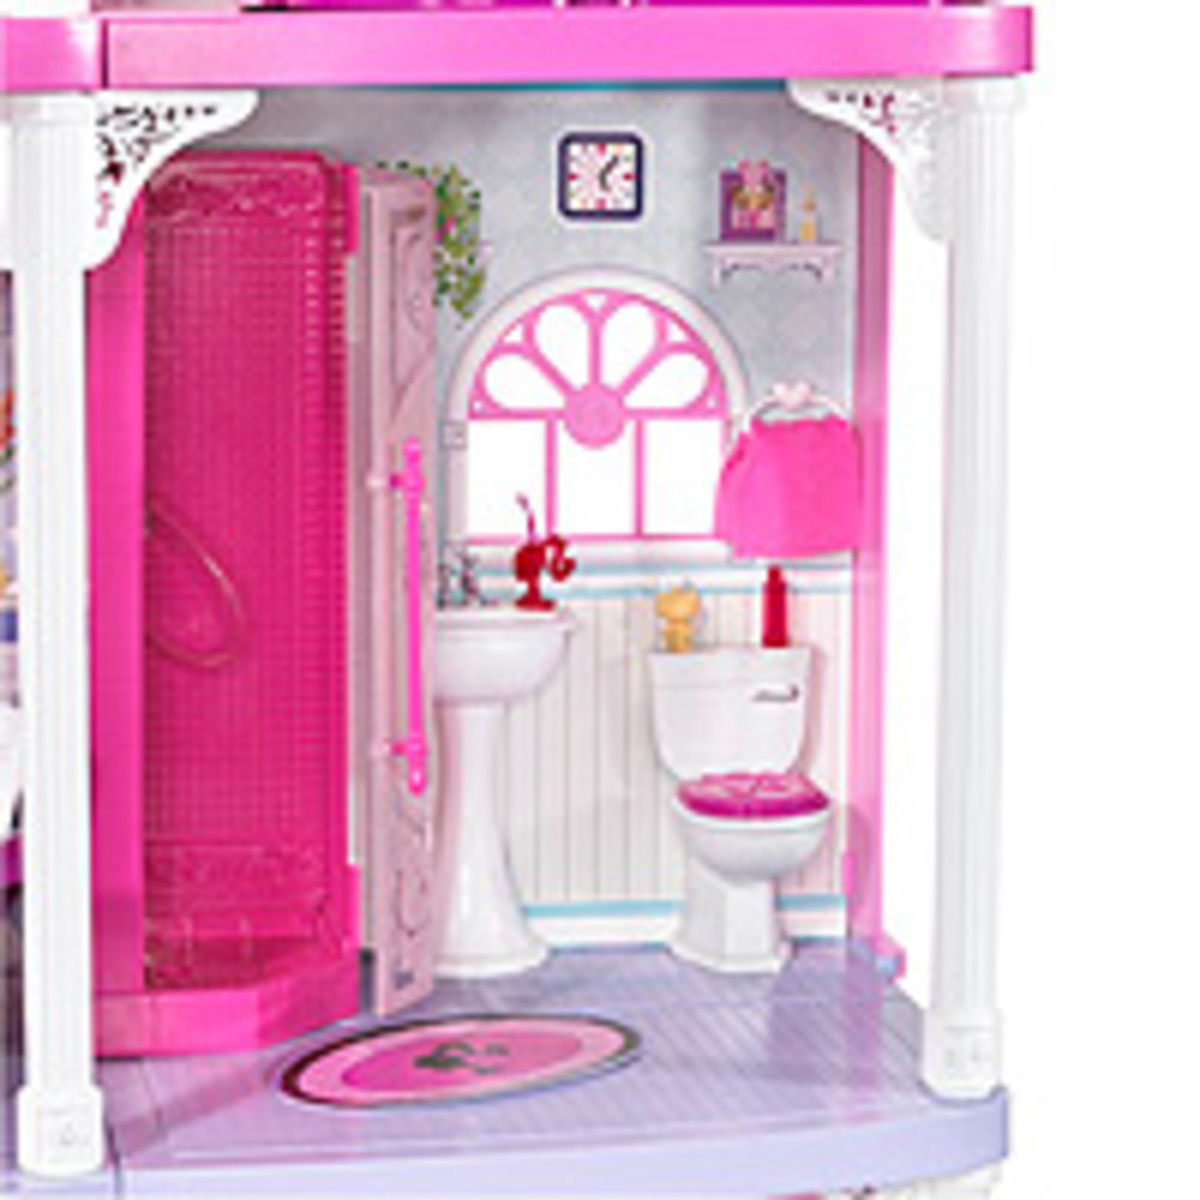 The Barbie dollhouse has a stocked fridge in the full kitchen. Just think all the dinner parties she can have.The timer sound will tell your guests when it's time to eat.